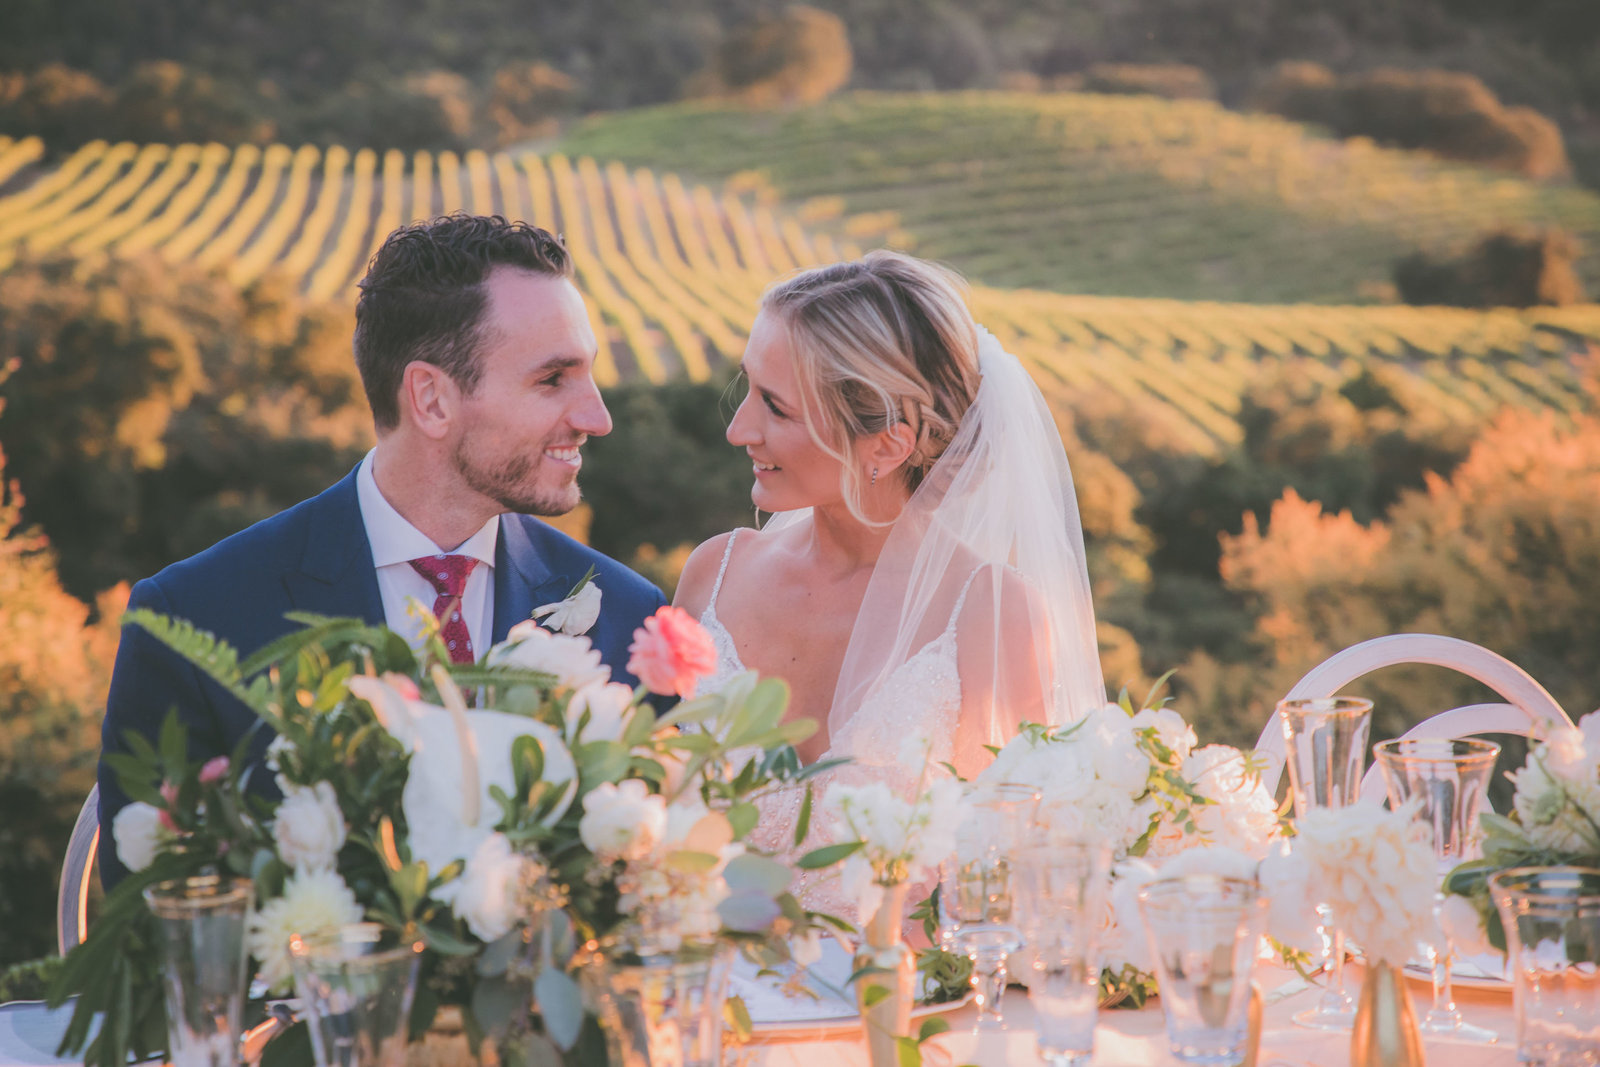 Bride and groom smile at each other during sunset at a vineyard in Carmel.